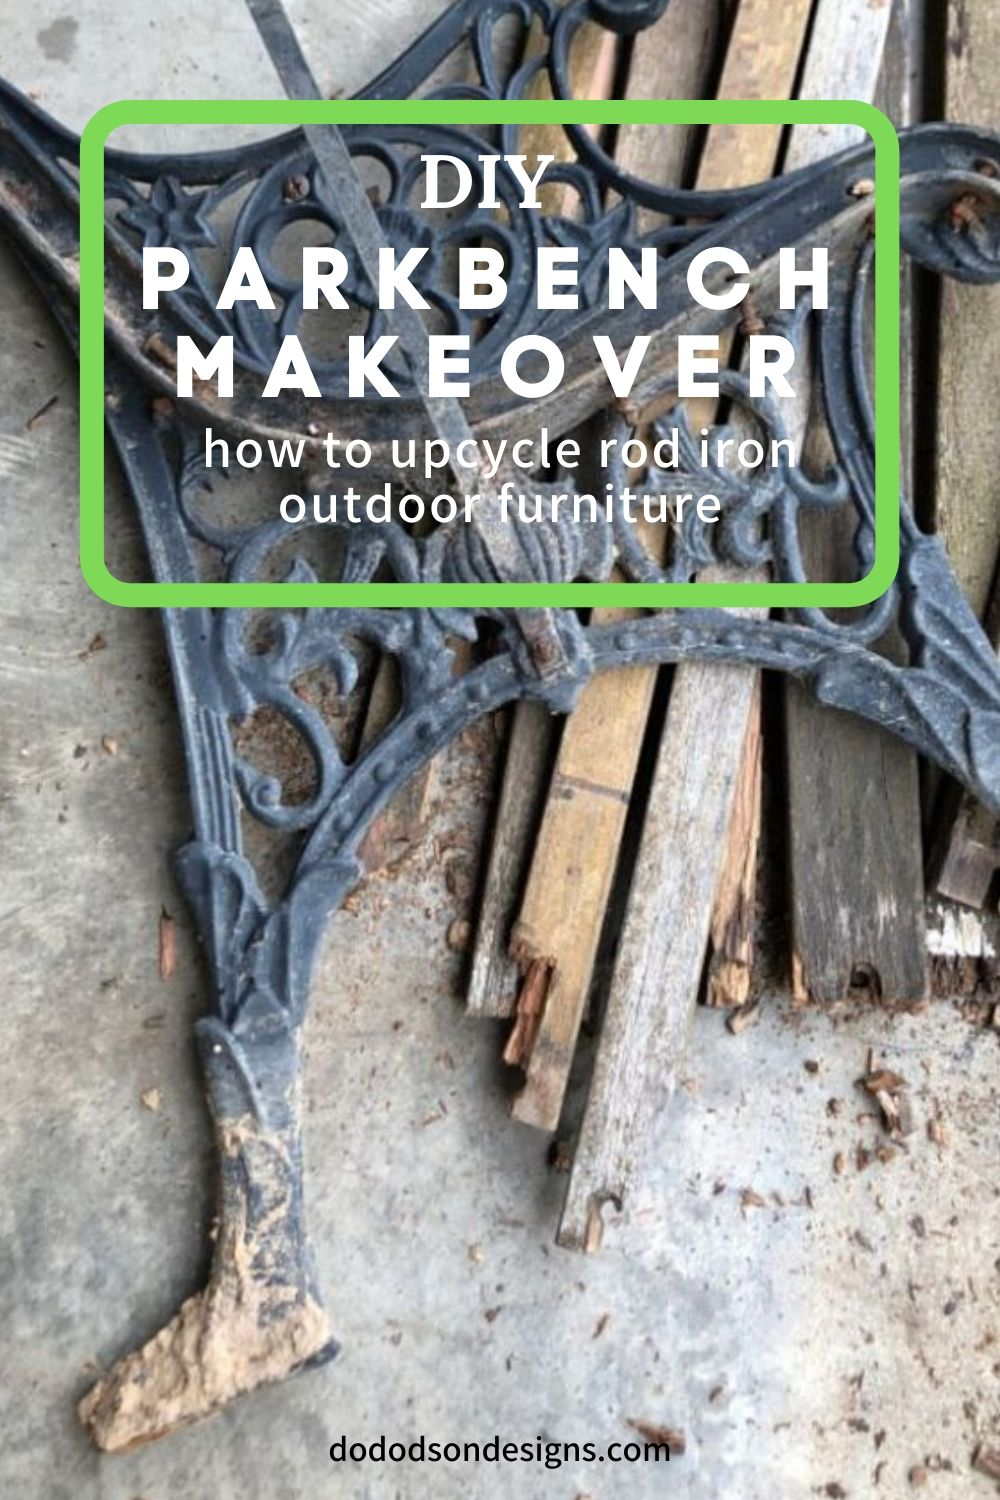 Park Bench Makeover-Upcycling Rod Iron Outdoor Furniture